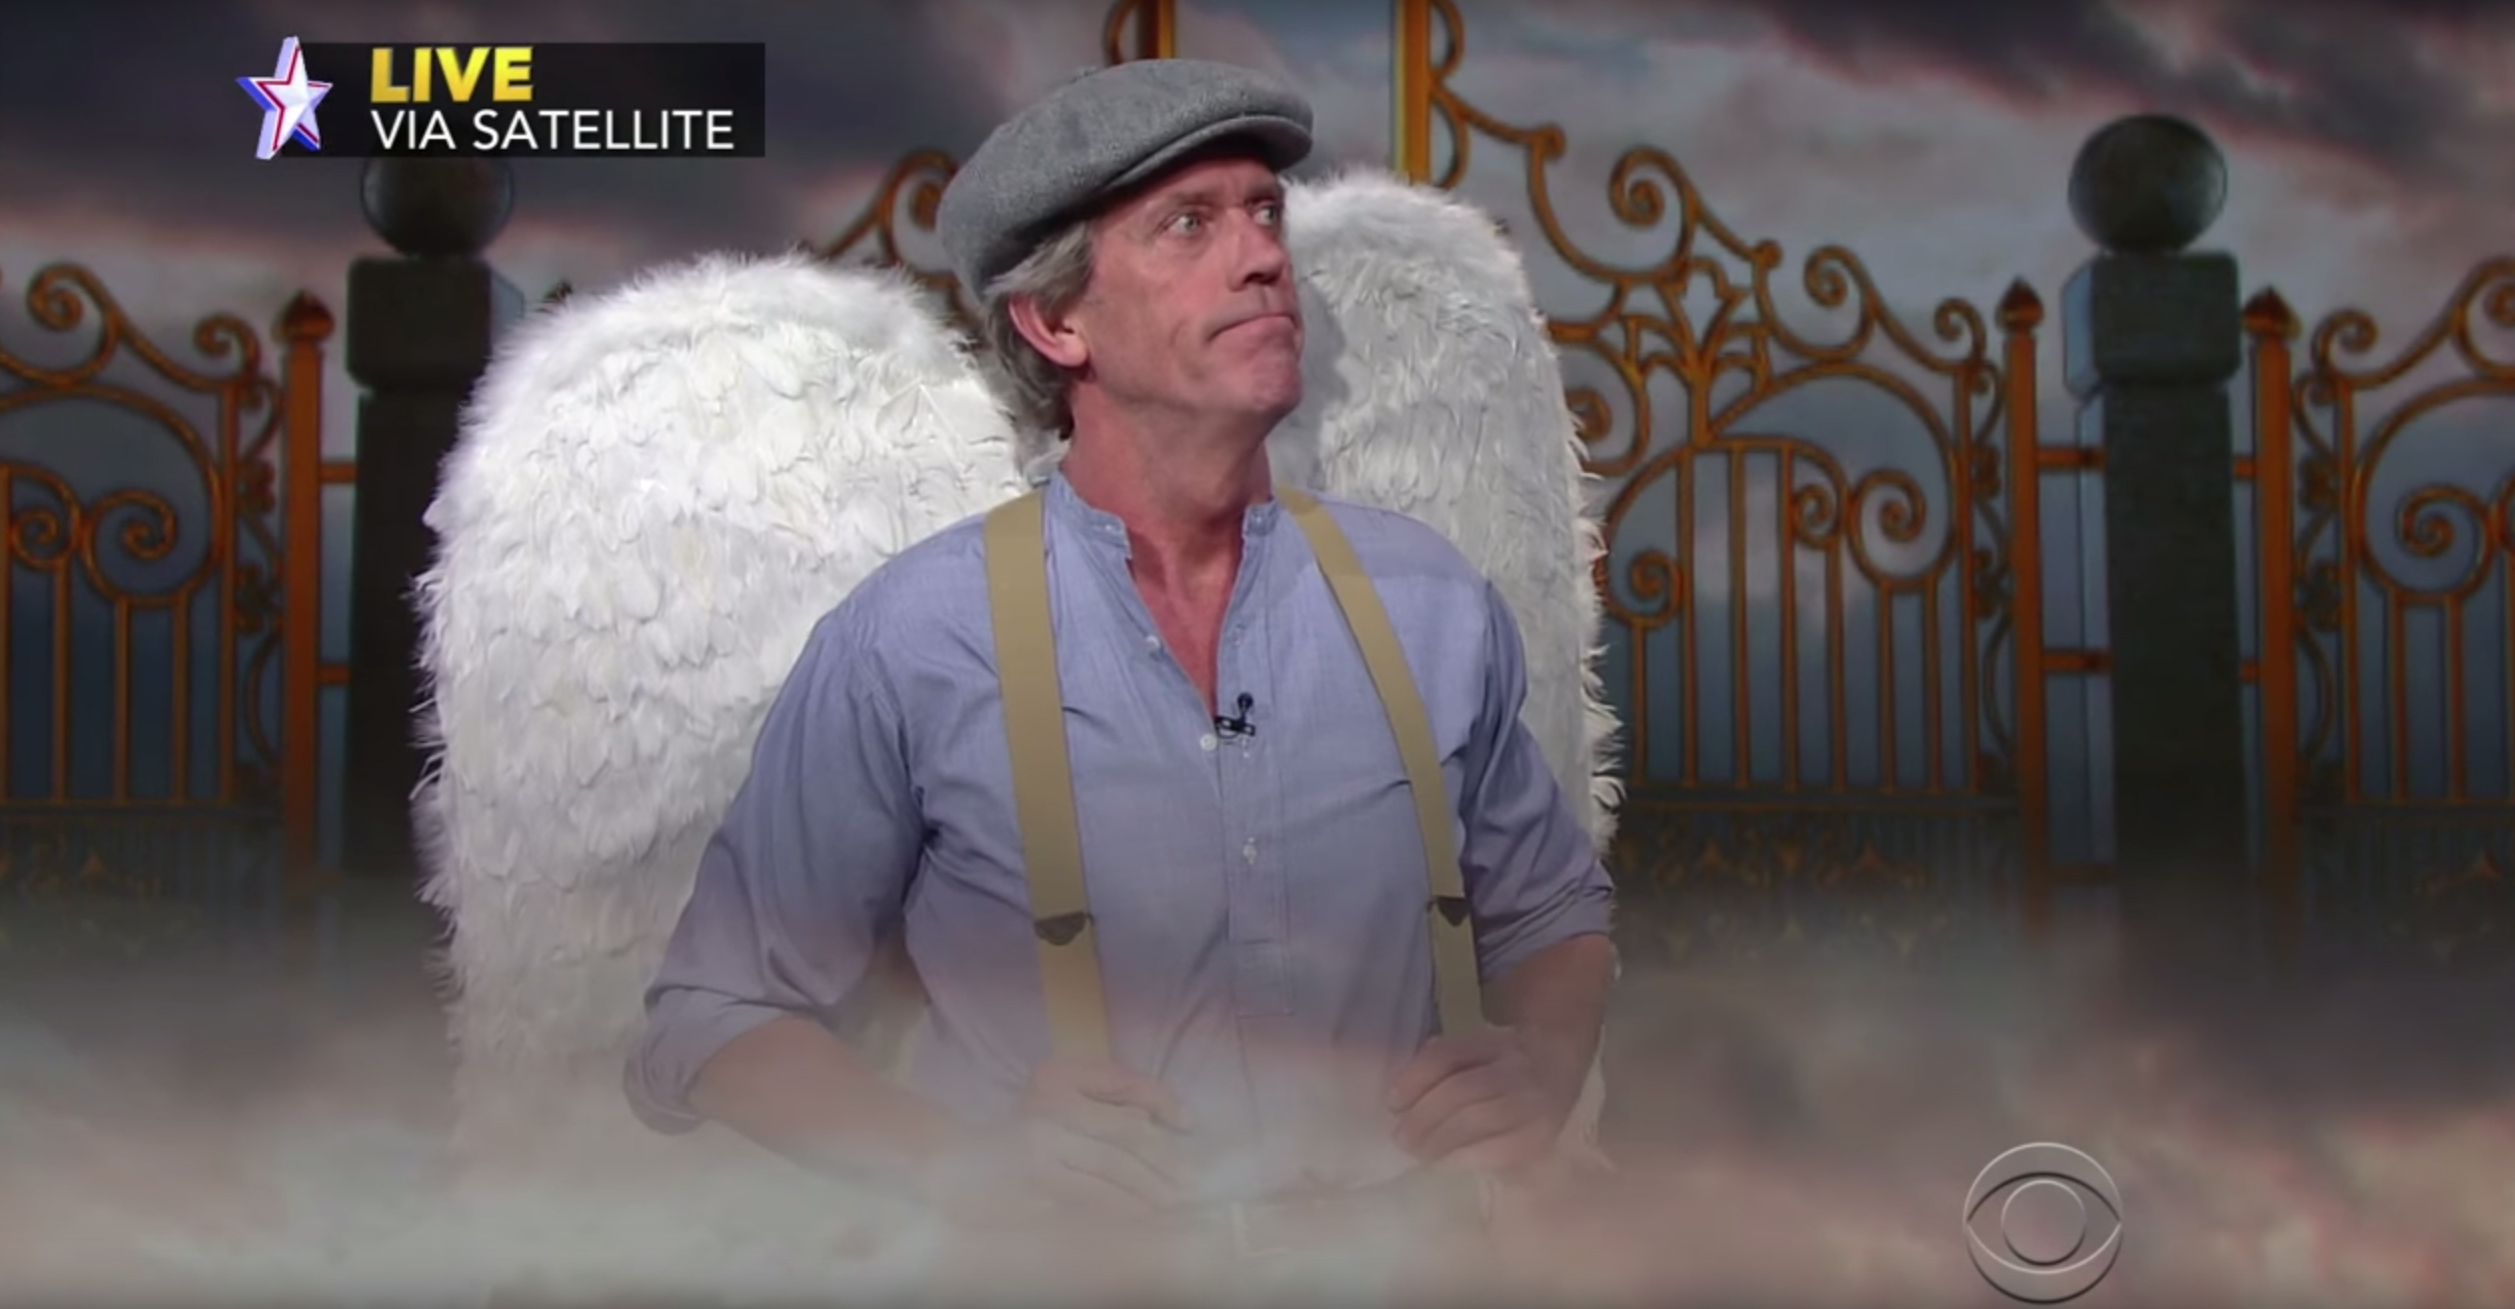 The Late Show with Stephen Colbert had a rather unusual guest on Wednesday night: a 'dead' voter called Horace McNulty